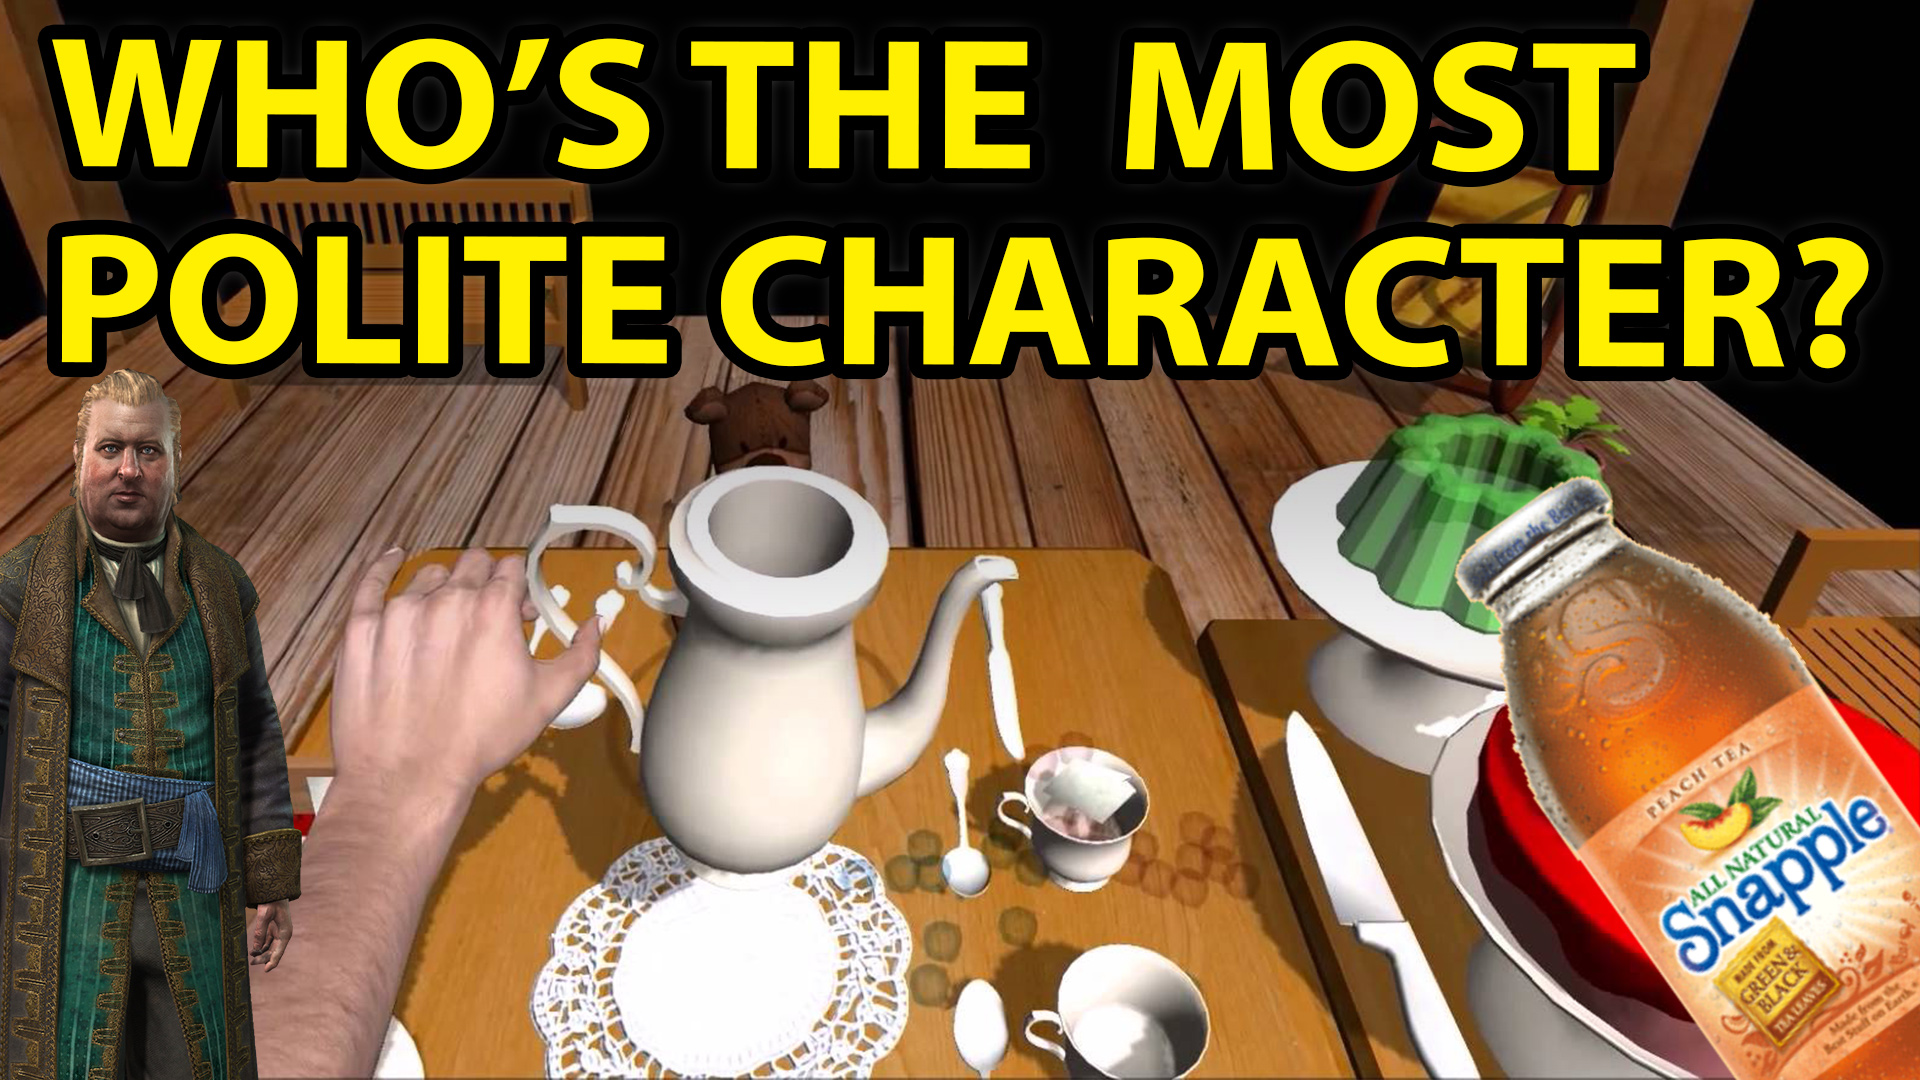 T Time, video games, polite, characters, Assassin's Creed, Black Flag, 3, 4, Tea Party Zombies Must Die, Tea Party Simulator, Dos Equis, Most Intersting Man in the World